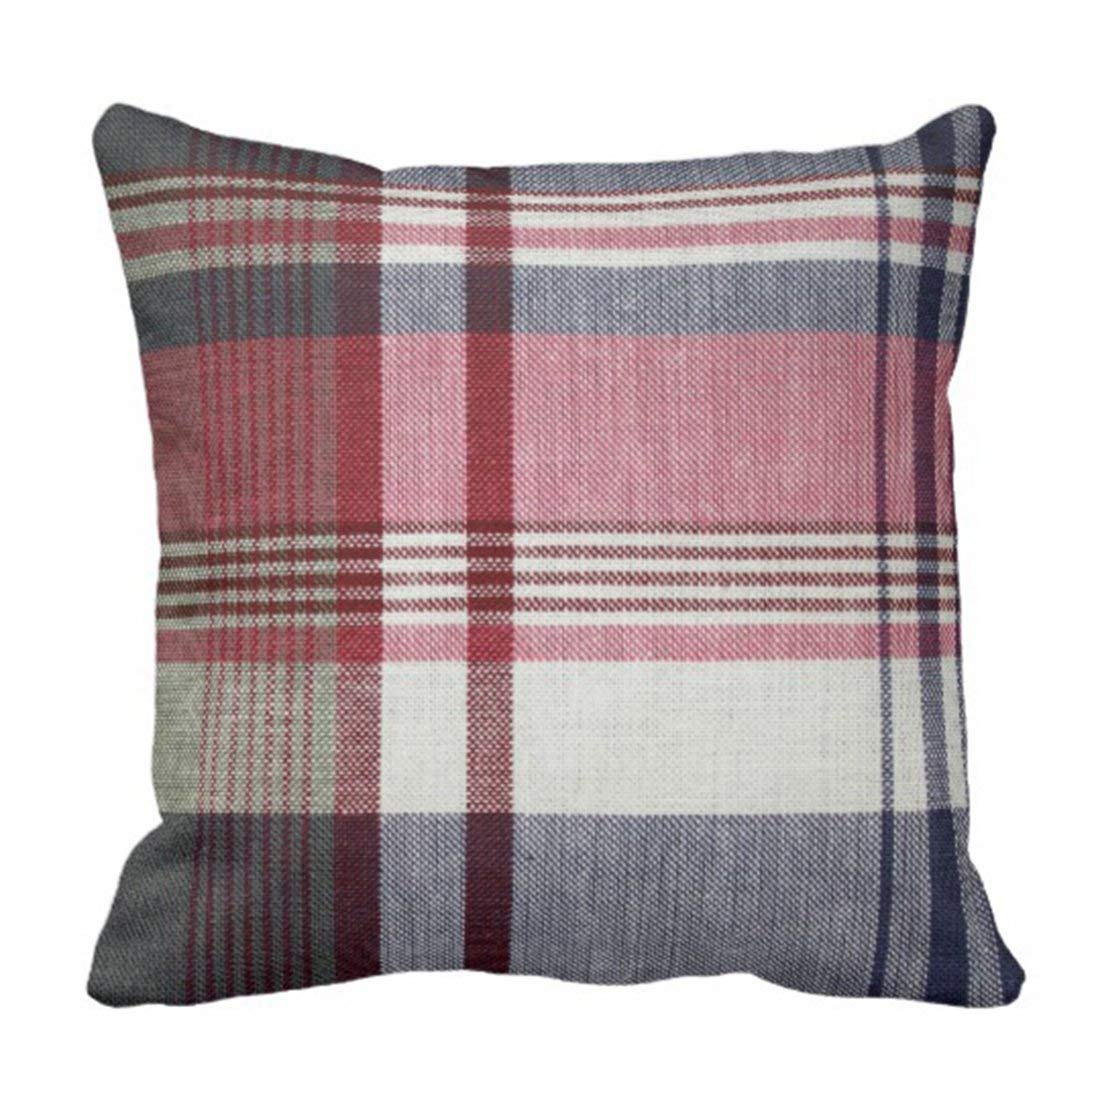 BPBOP Stripes Grey Red Gray Tartan Striped Pillowcase Cushion Cover 18x18 inches